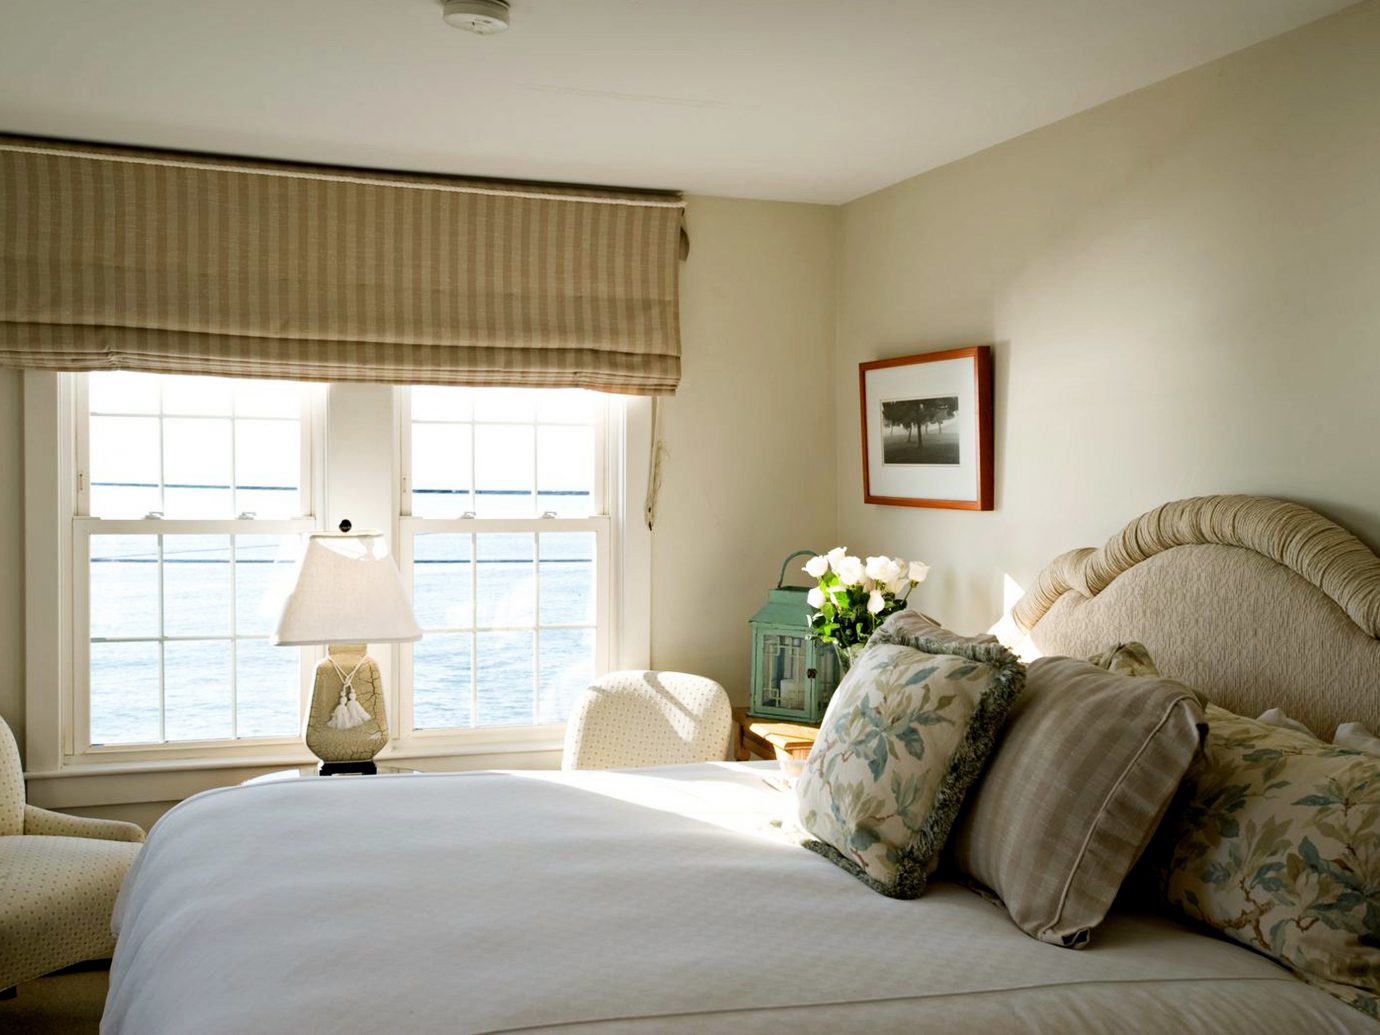 Beachfront Bedroom Country Hotels Inn Scenic views Waterfront indoor wall bed window room property ceiling living room home estate interior design hotel real estate cottage floor Suite pillow furniture